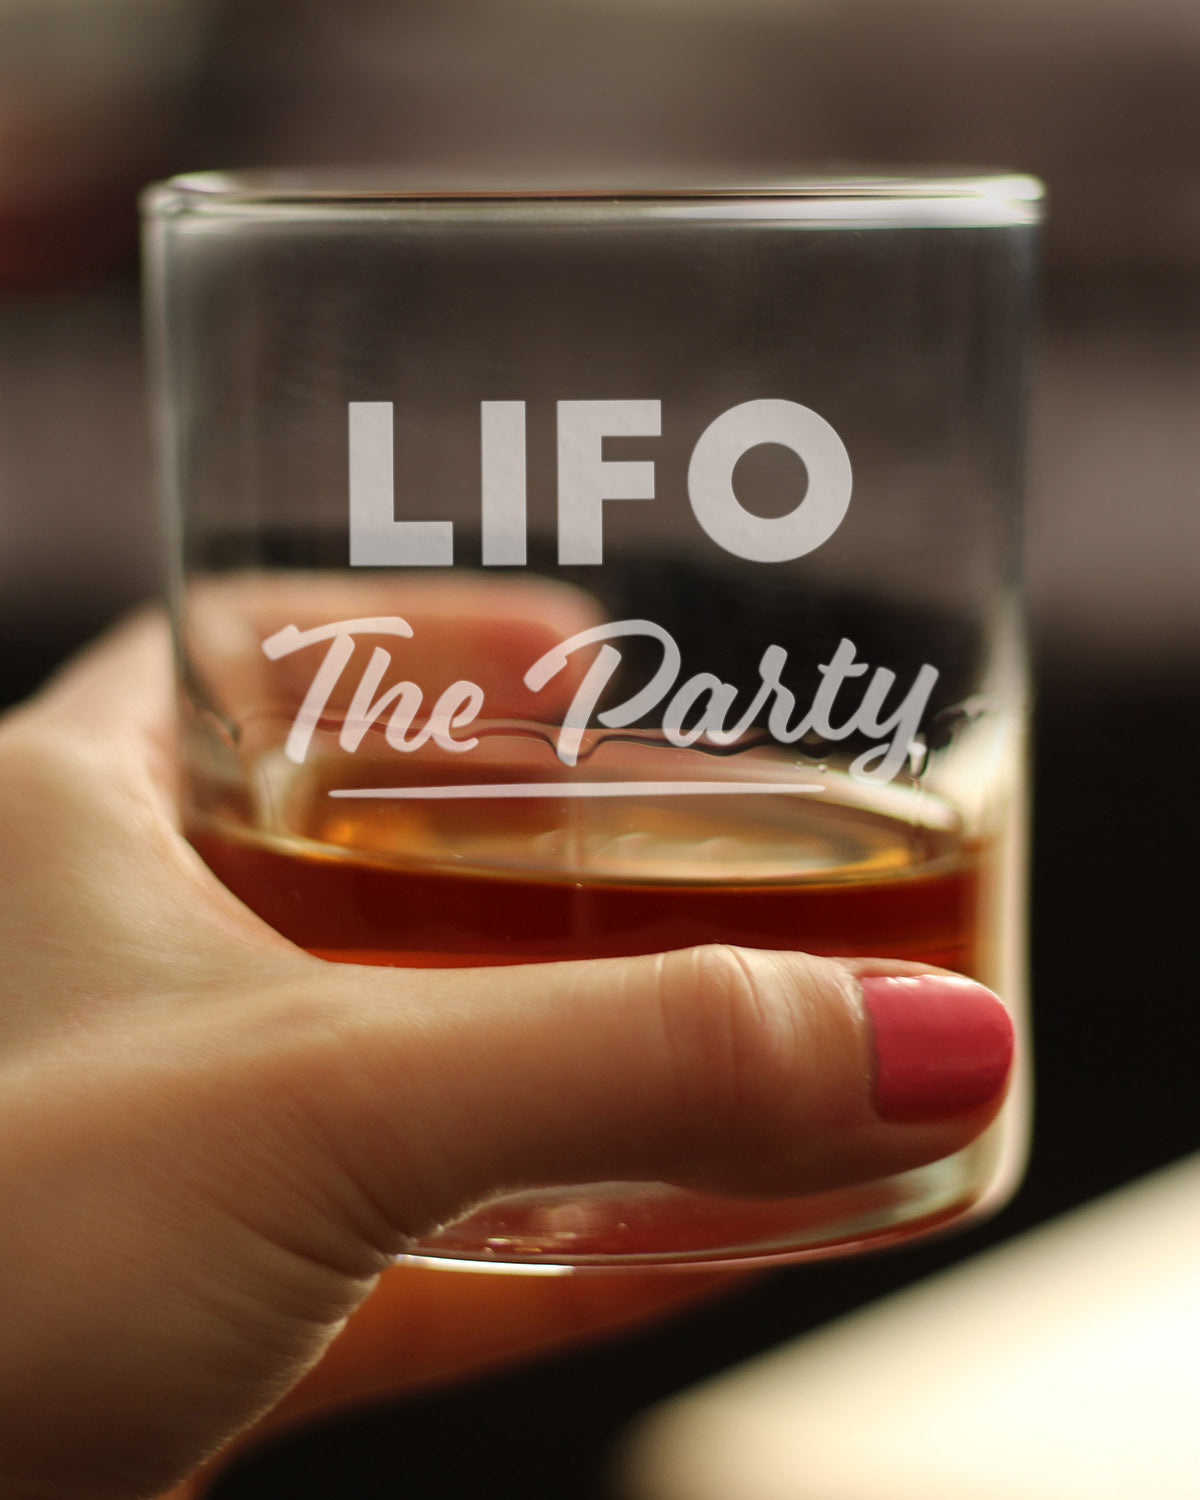 LIFO The Party - 10 Ounce Rocks Glass